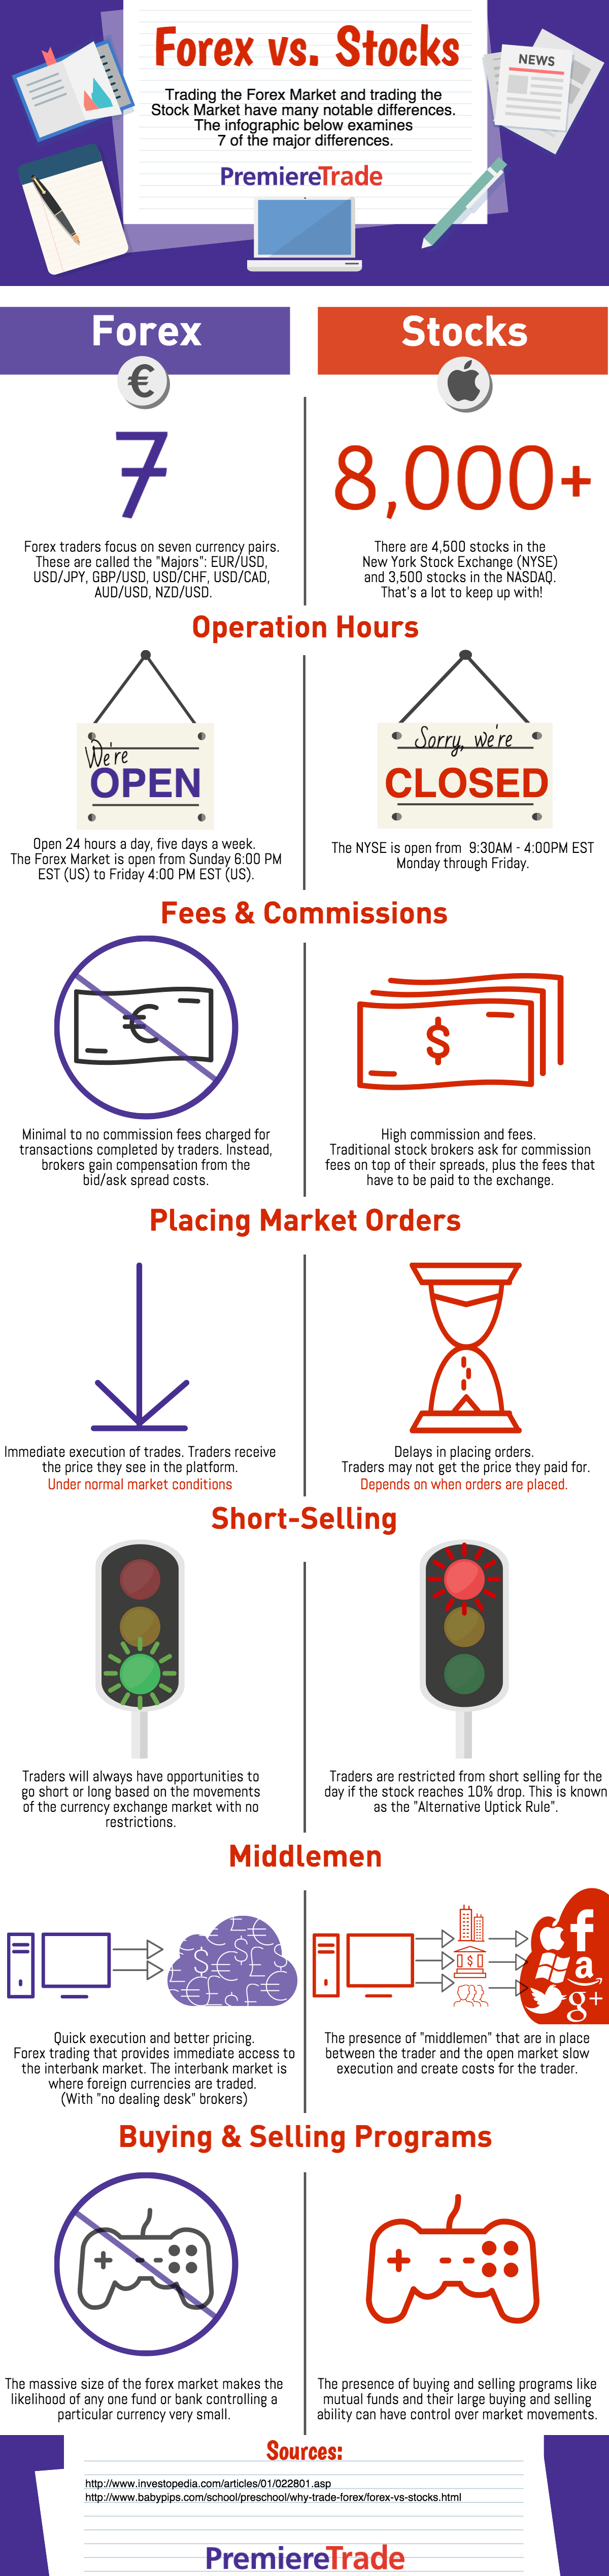 Trading forex vs stocks